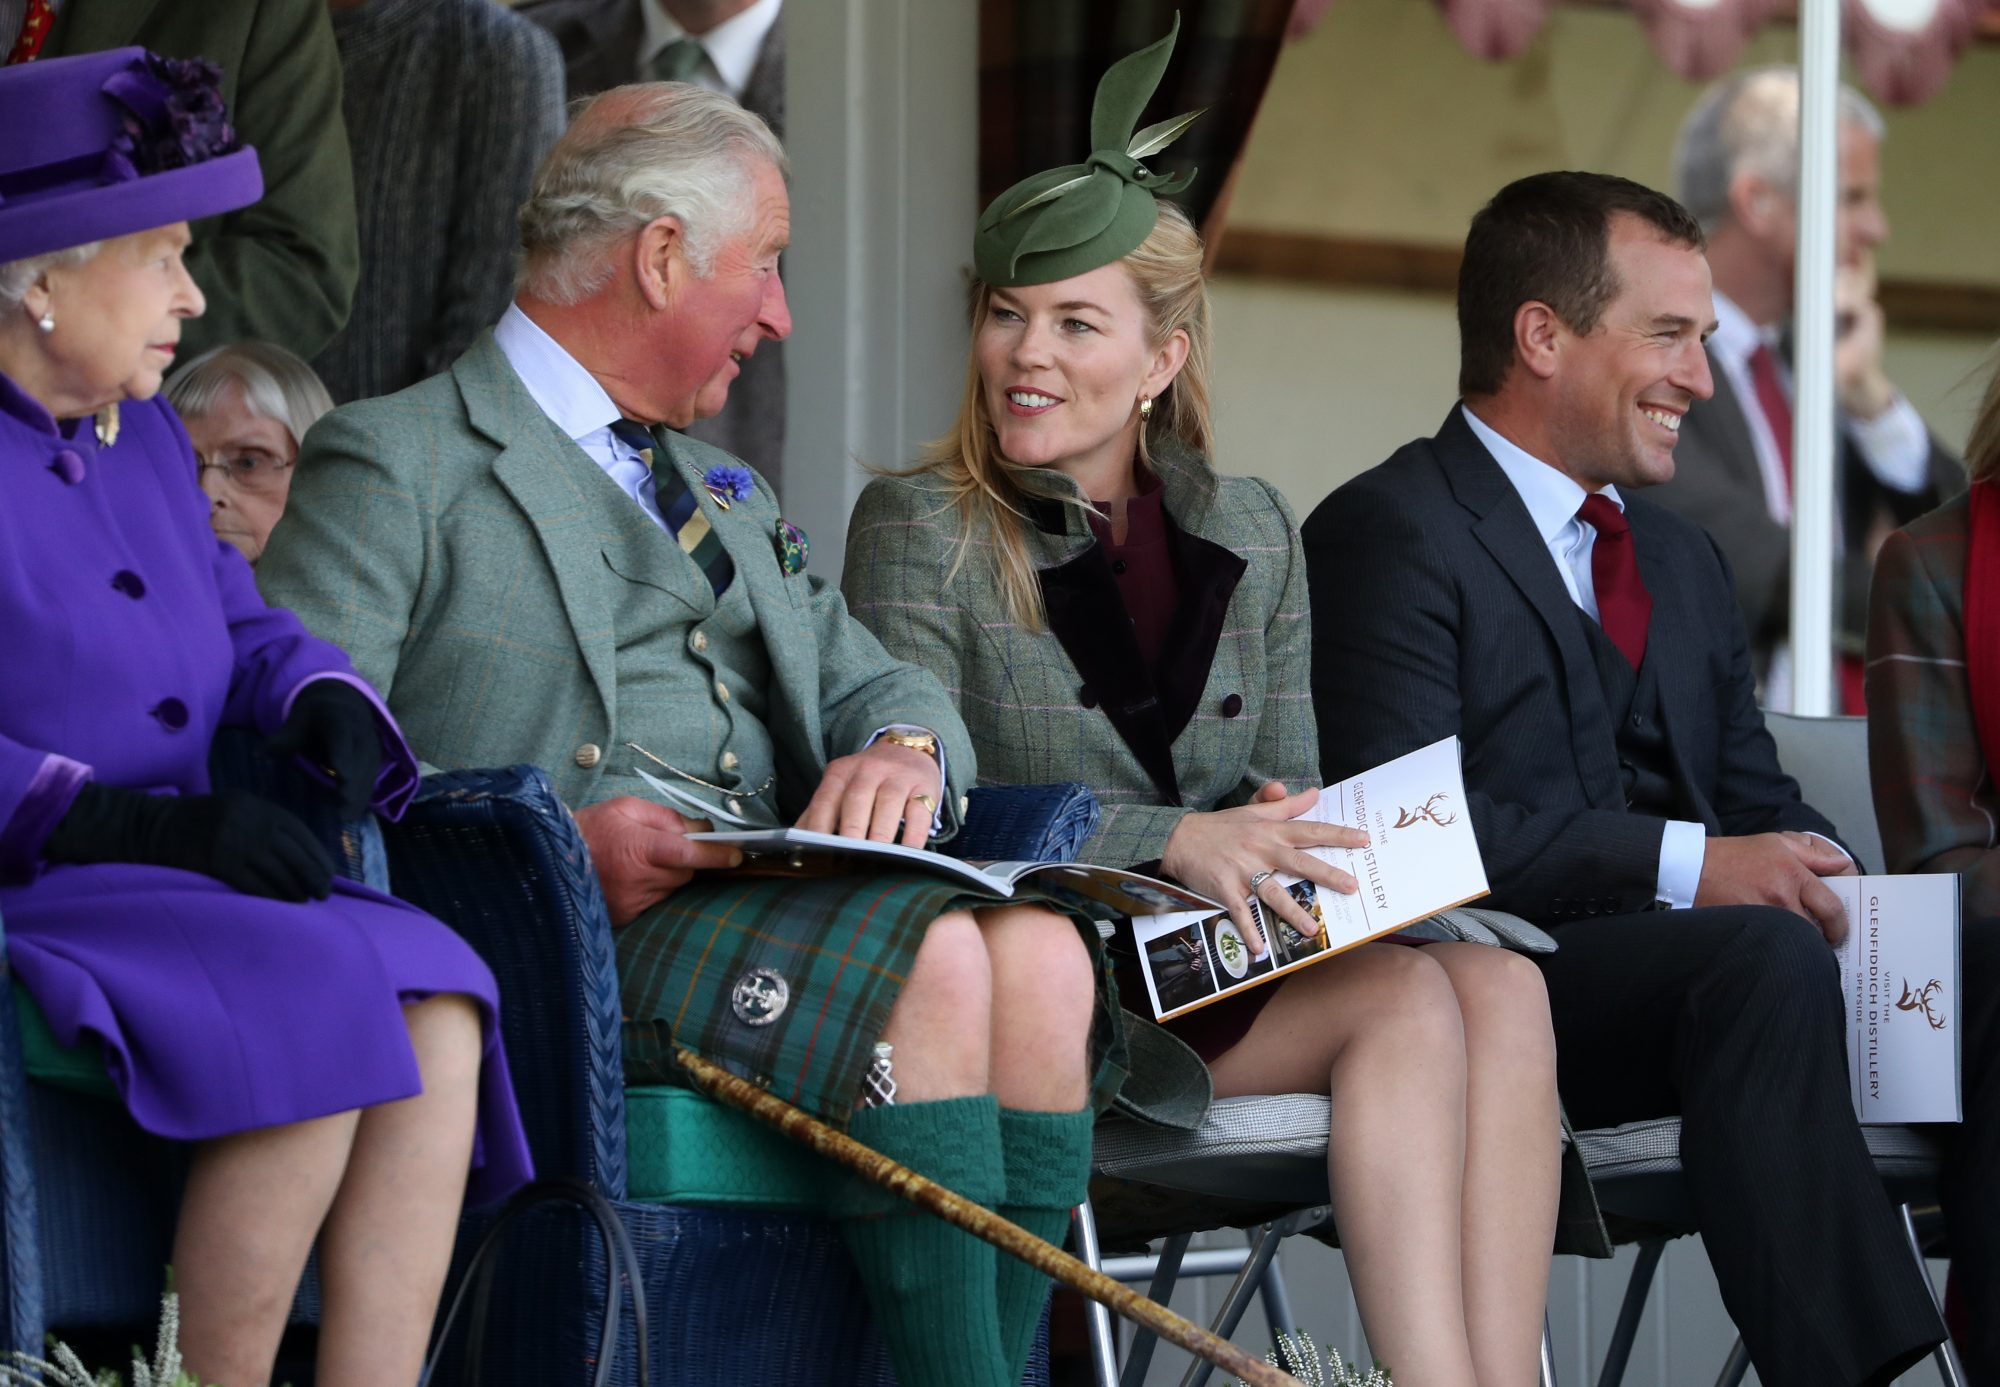 Peter y Autumn Phillips se están divorciando